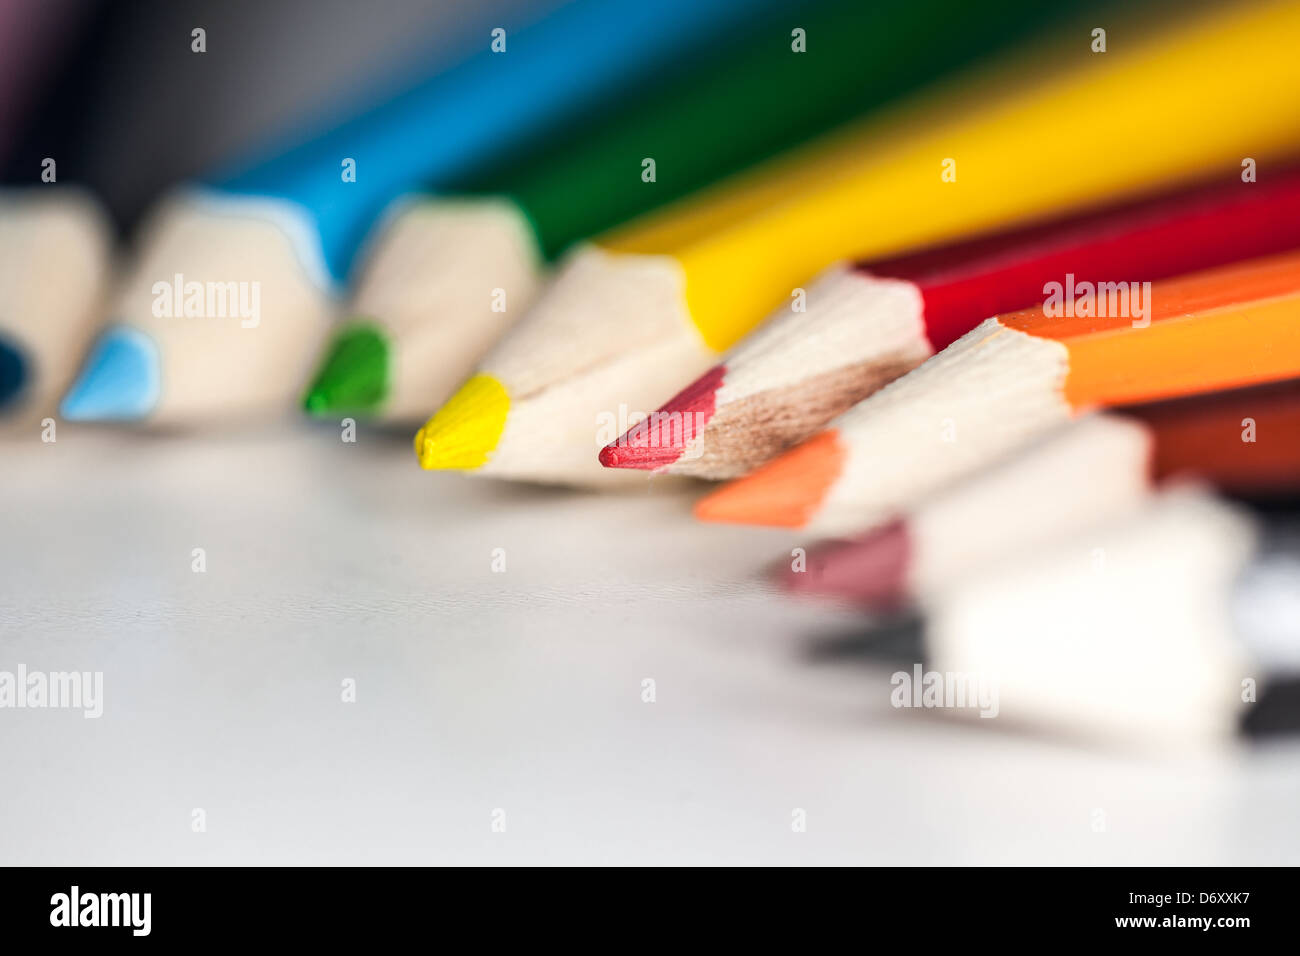 Coloured pencil tips. - Stock Image